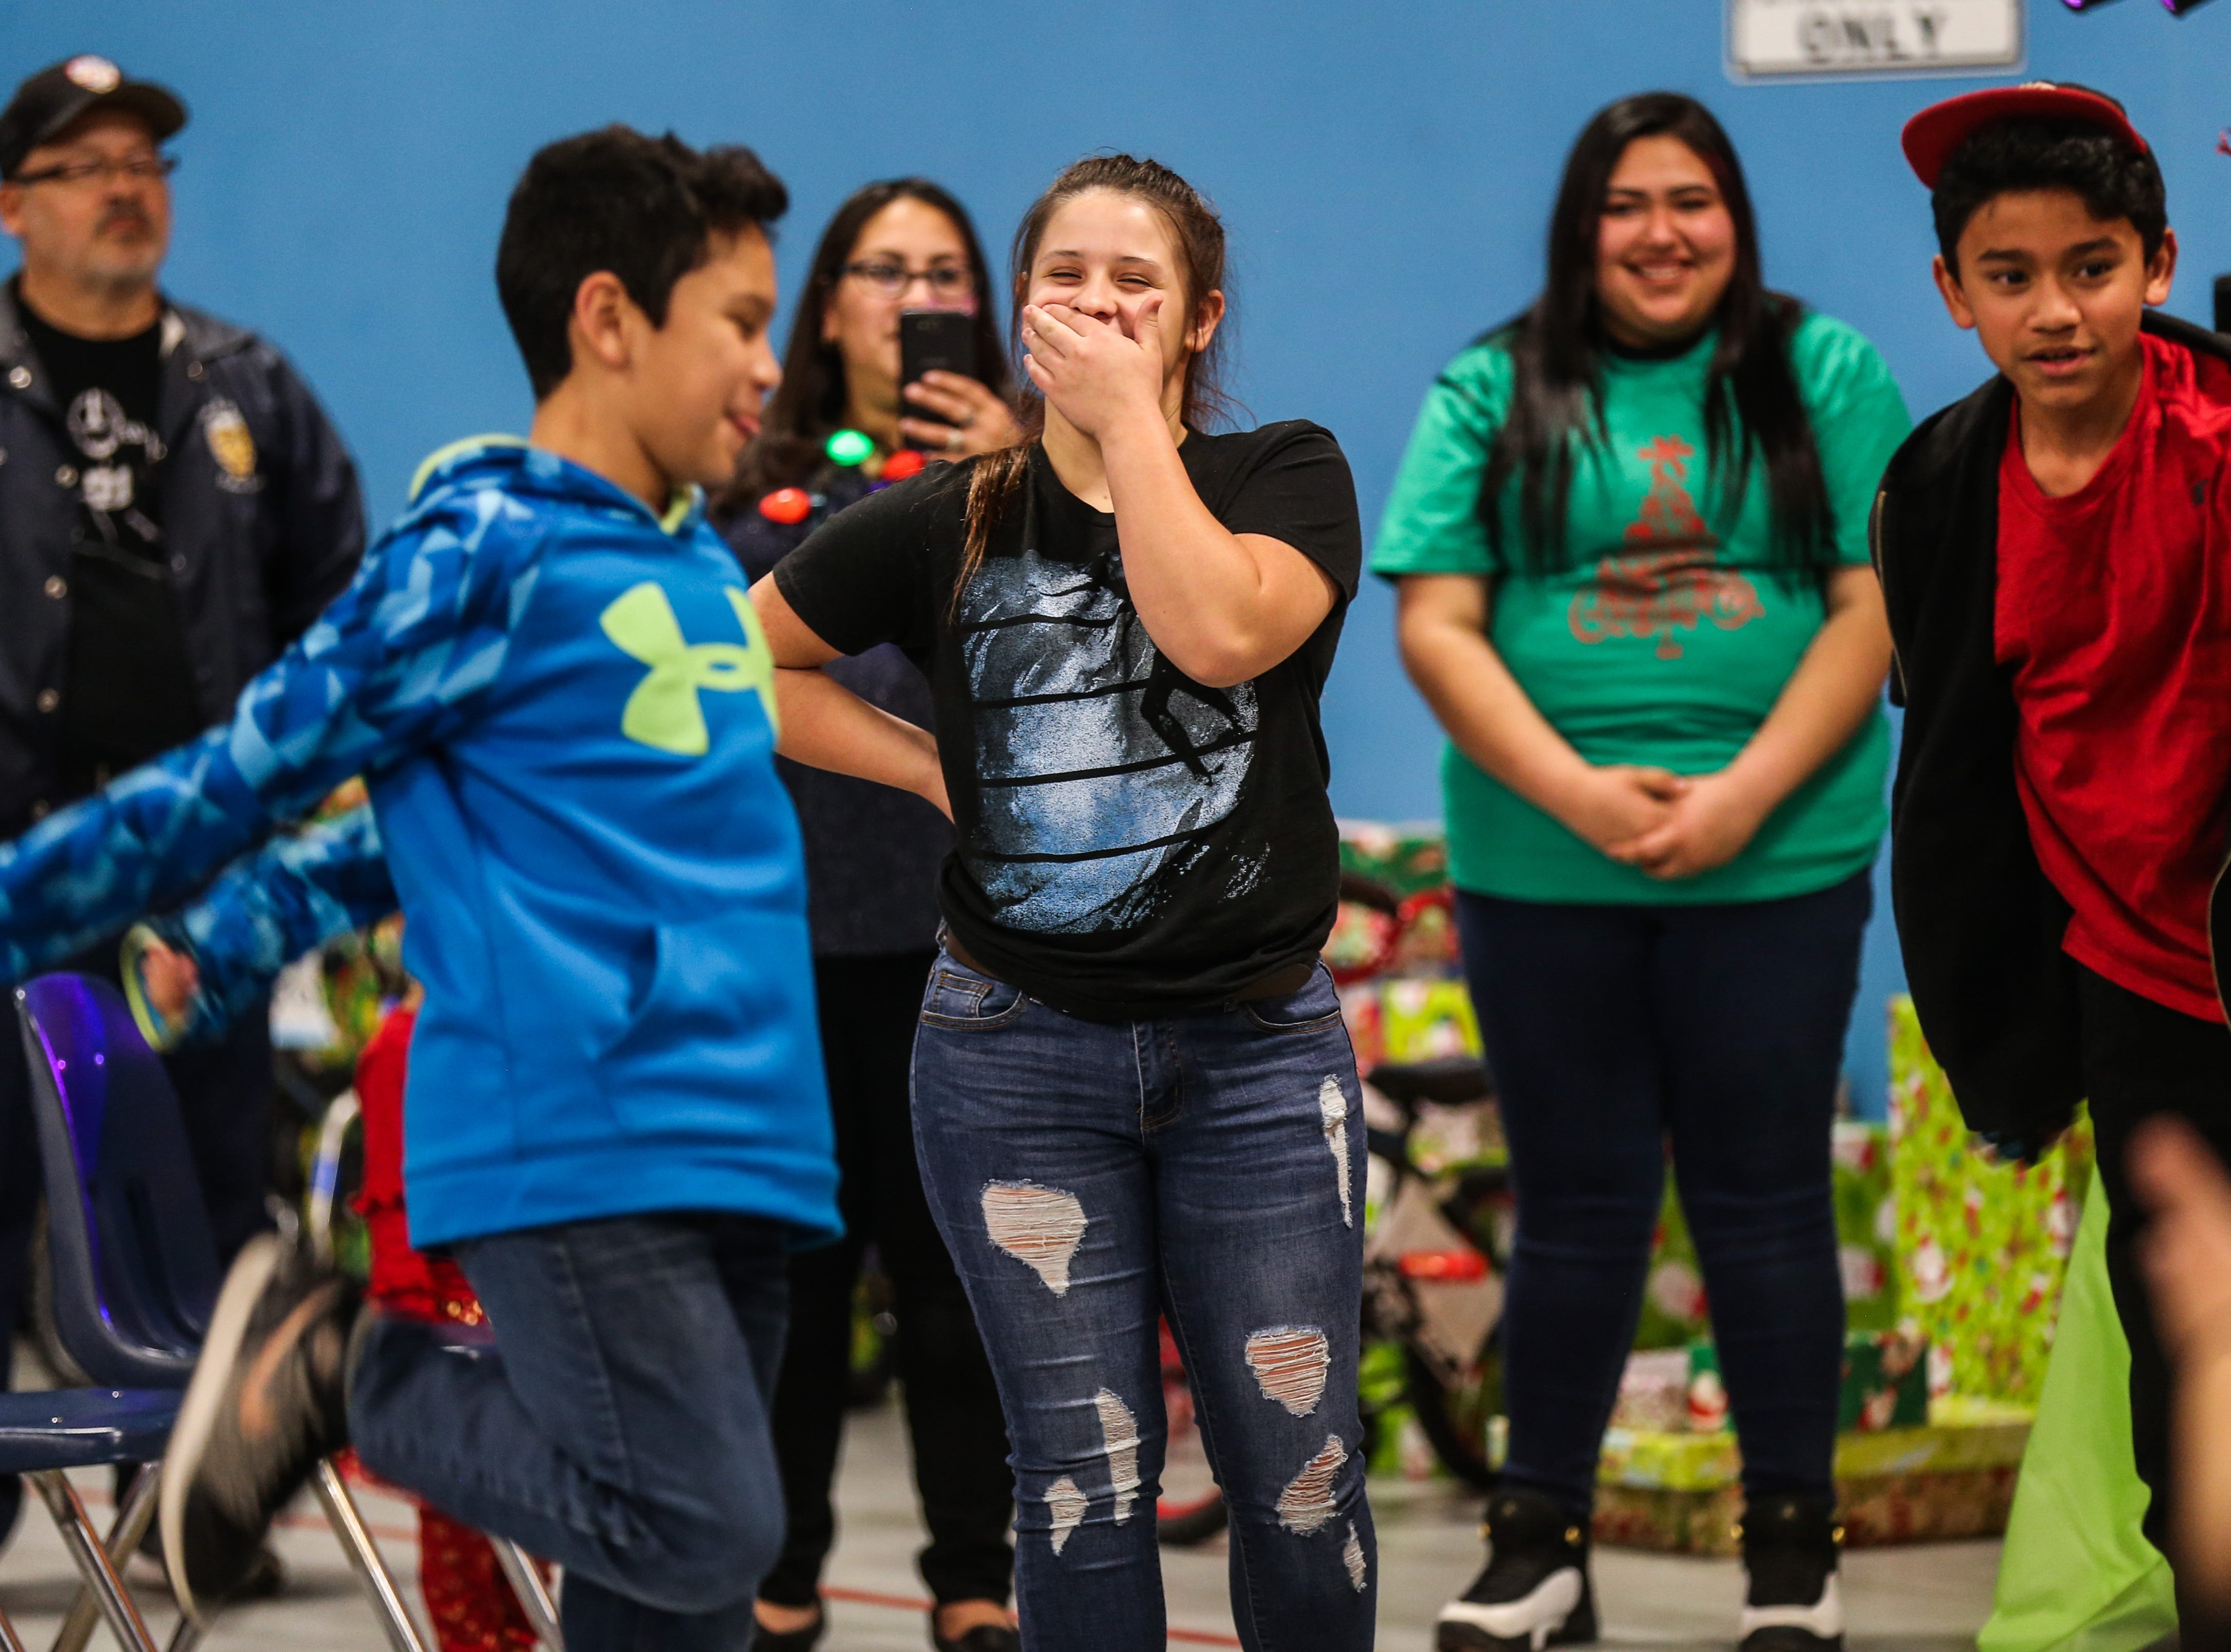 Teens show off their moves in a dance contest during the In the Spirit of Christmas party Saturday, Dec. 15, 2018, at the Southside Recreation Center.